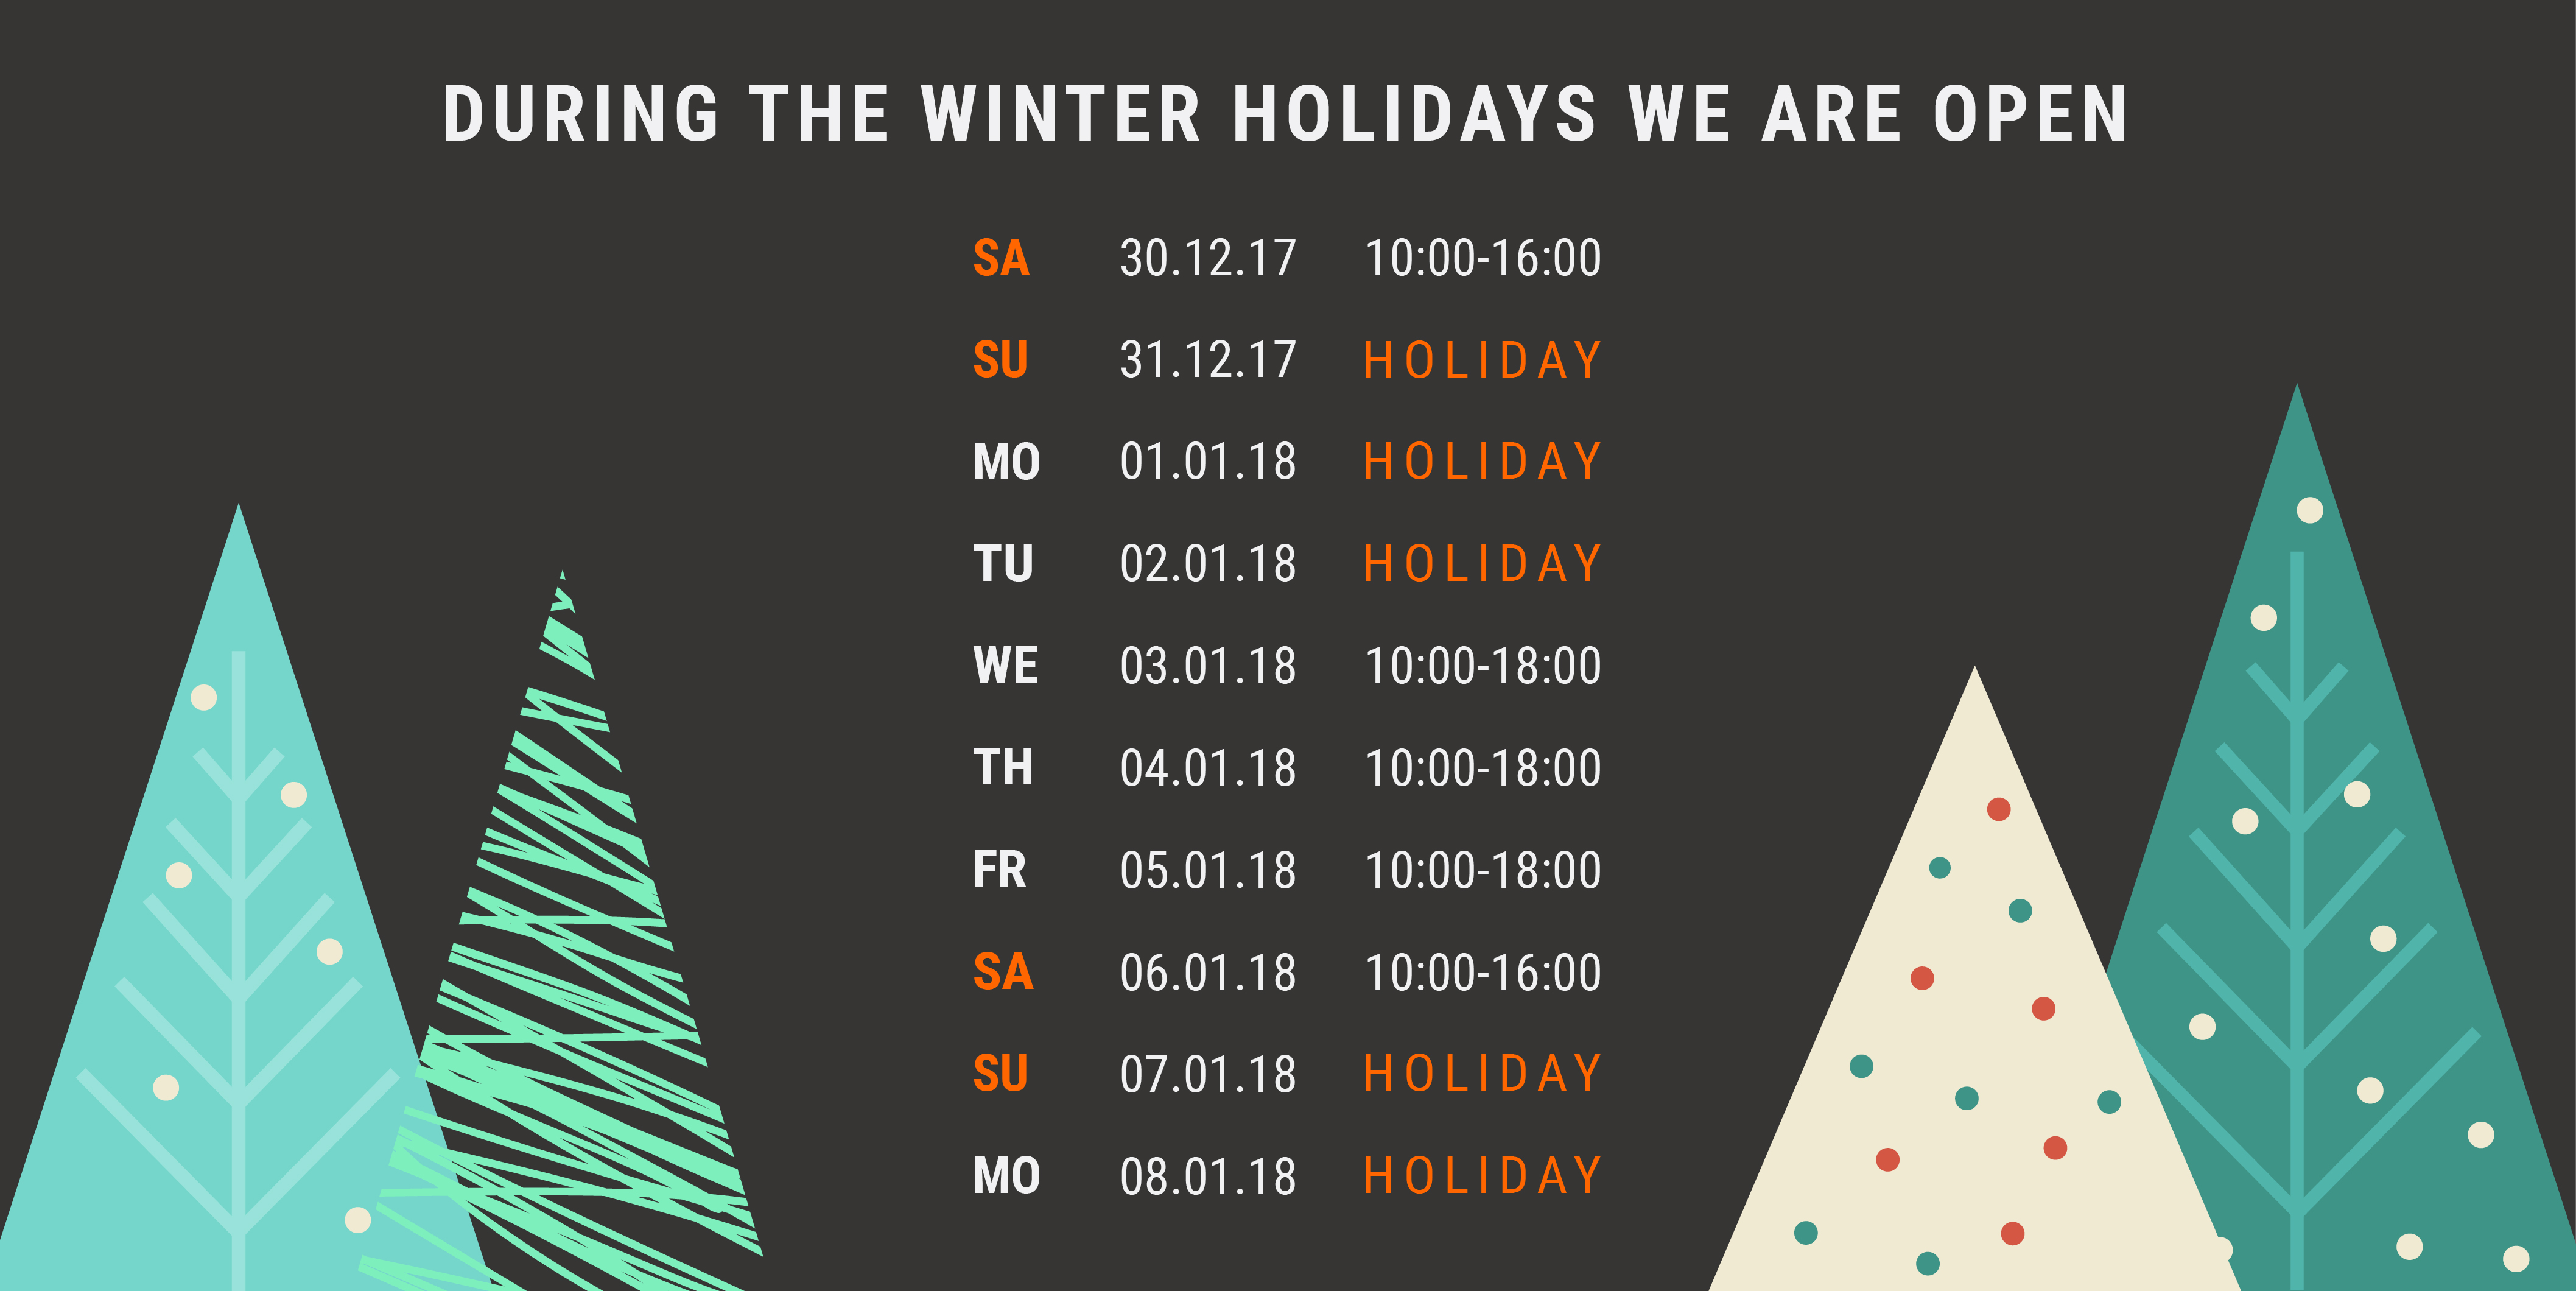 During the winter holidays we are open